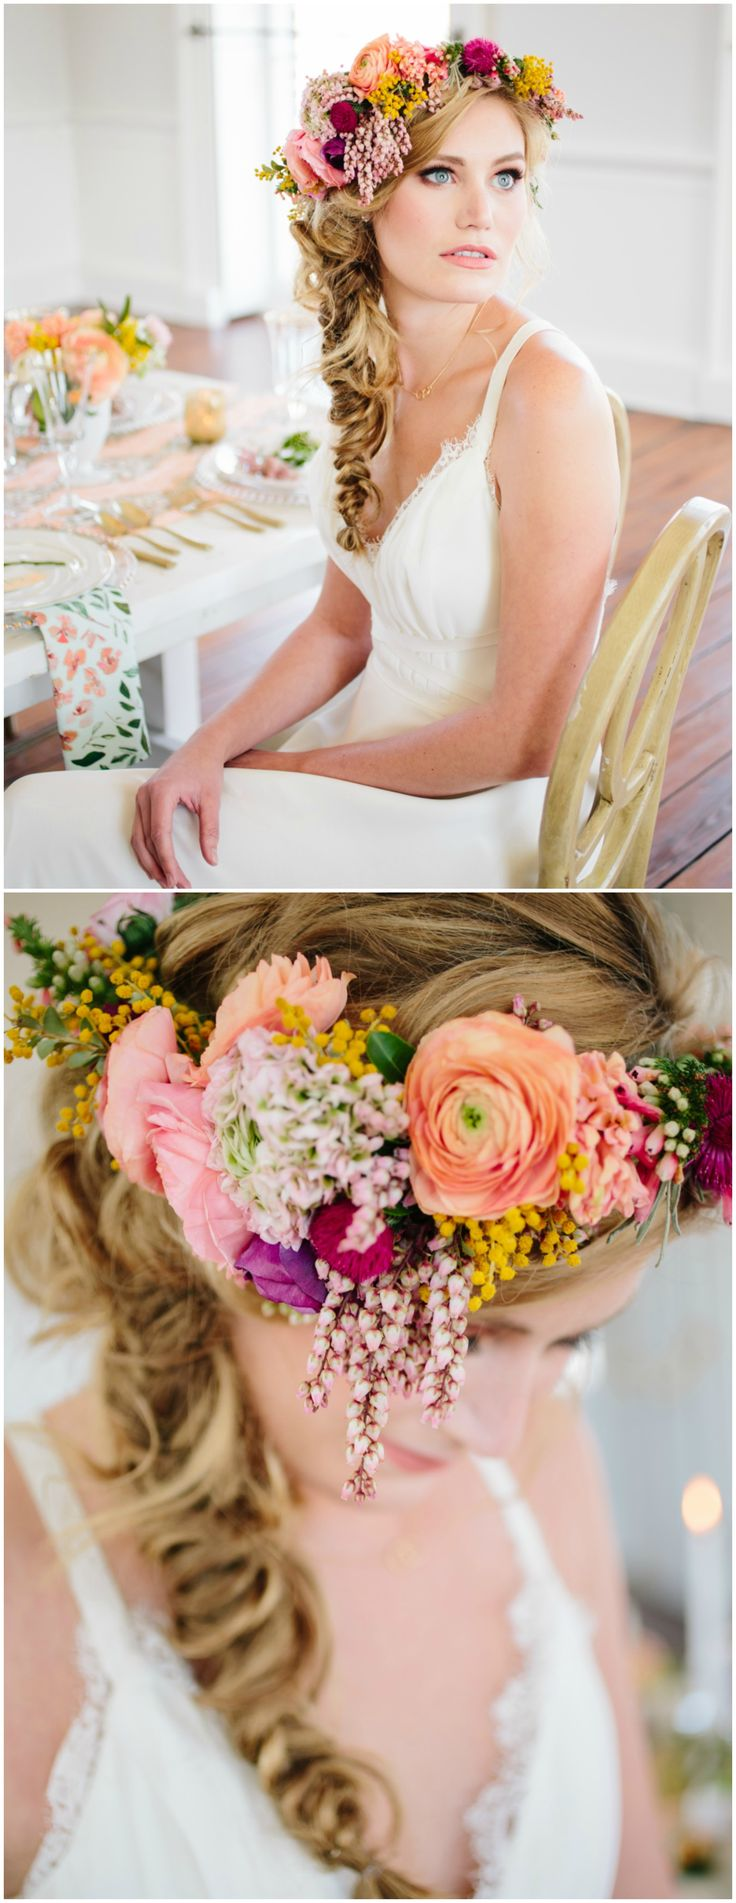 Bridal flower crown, colorful flowers, fishtail braid, wedding hair ideas // Riverland Studios